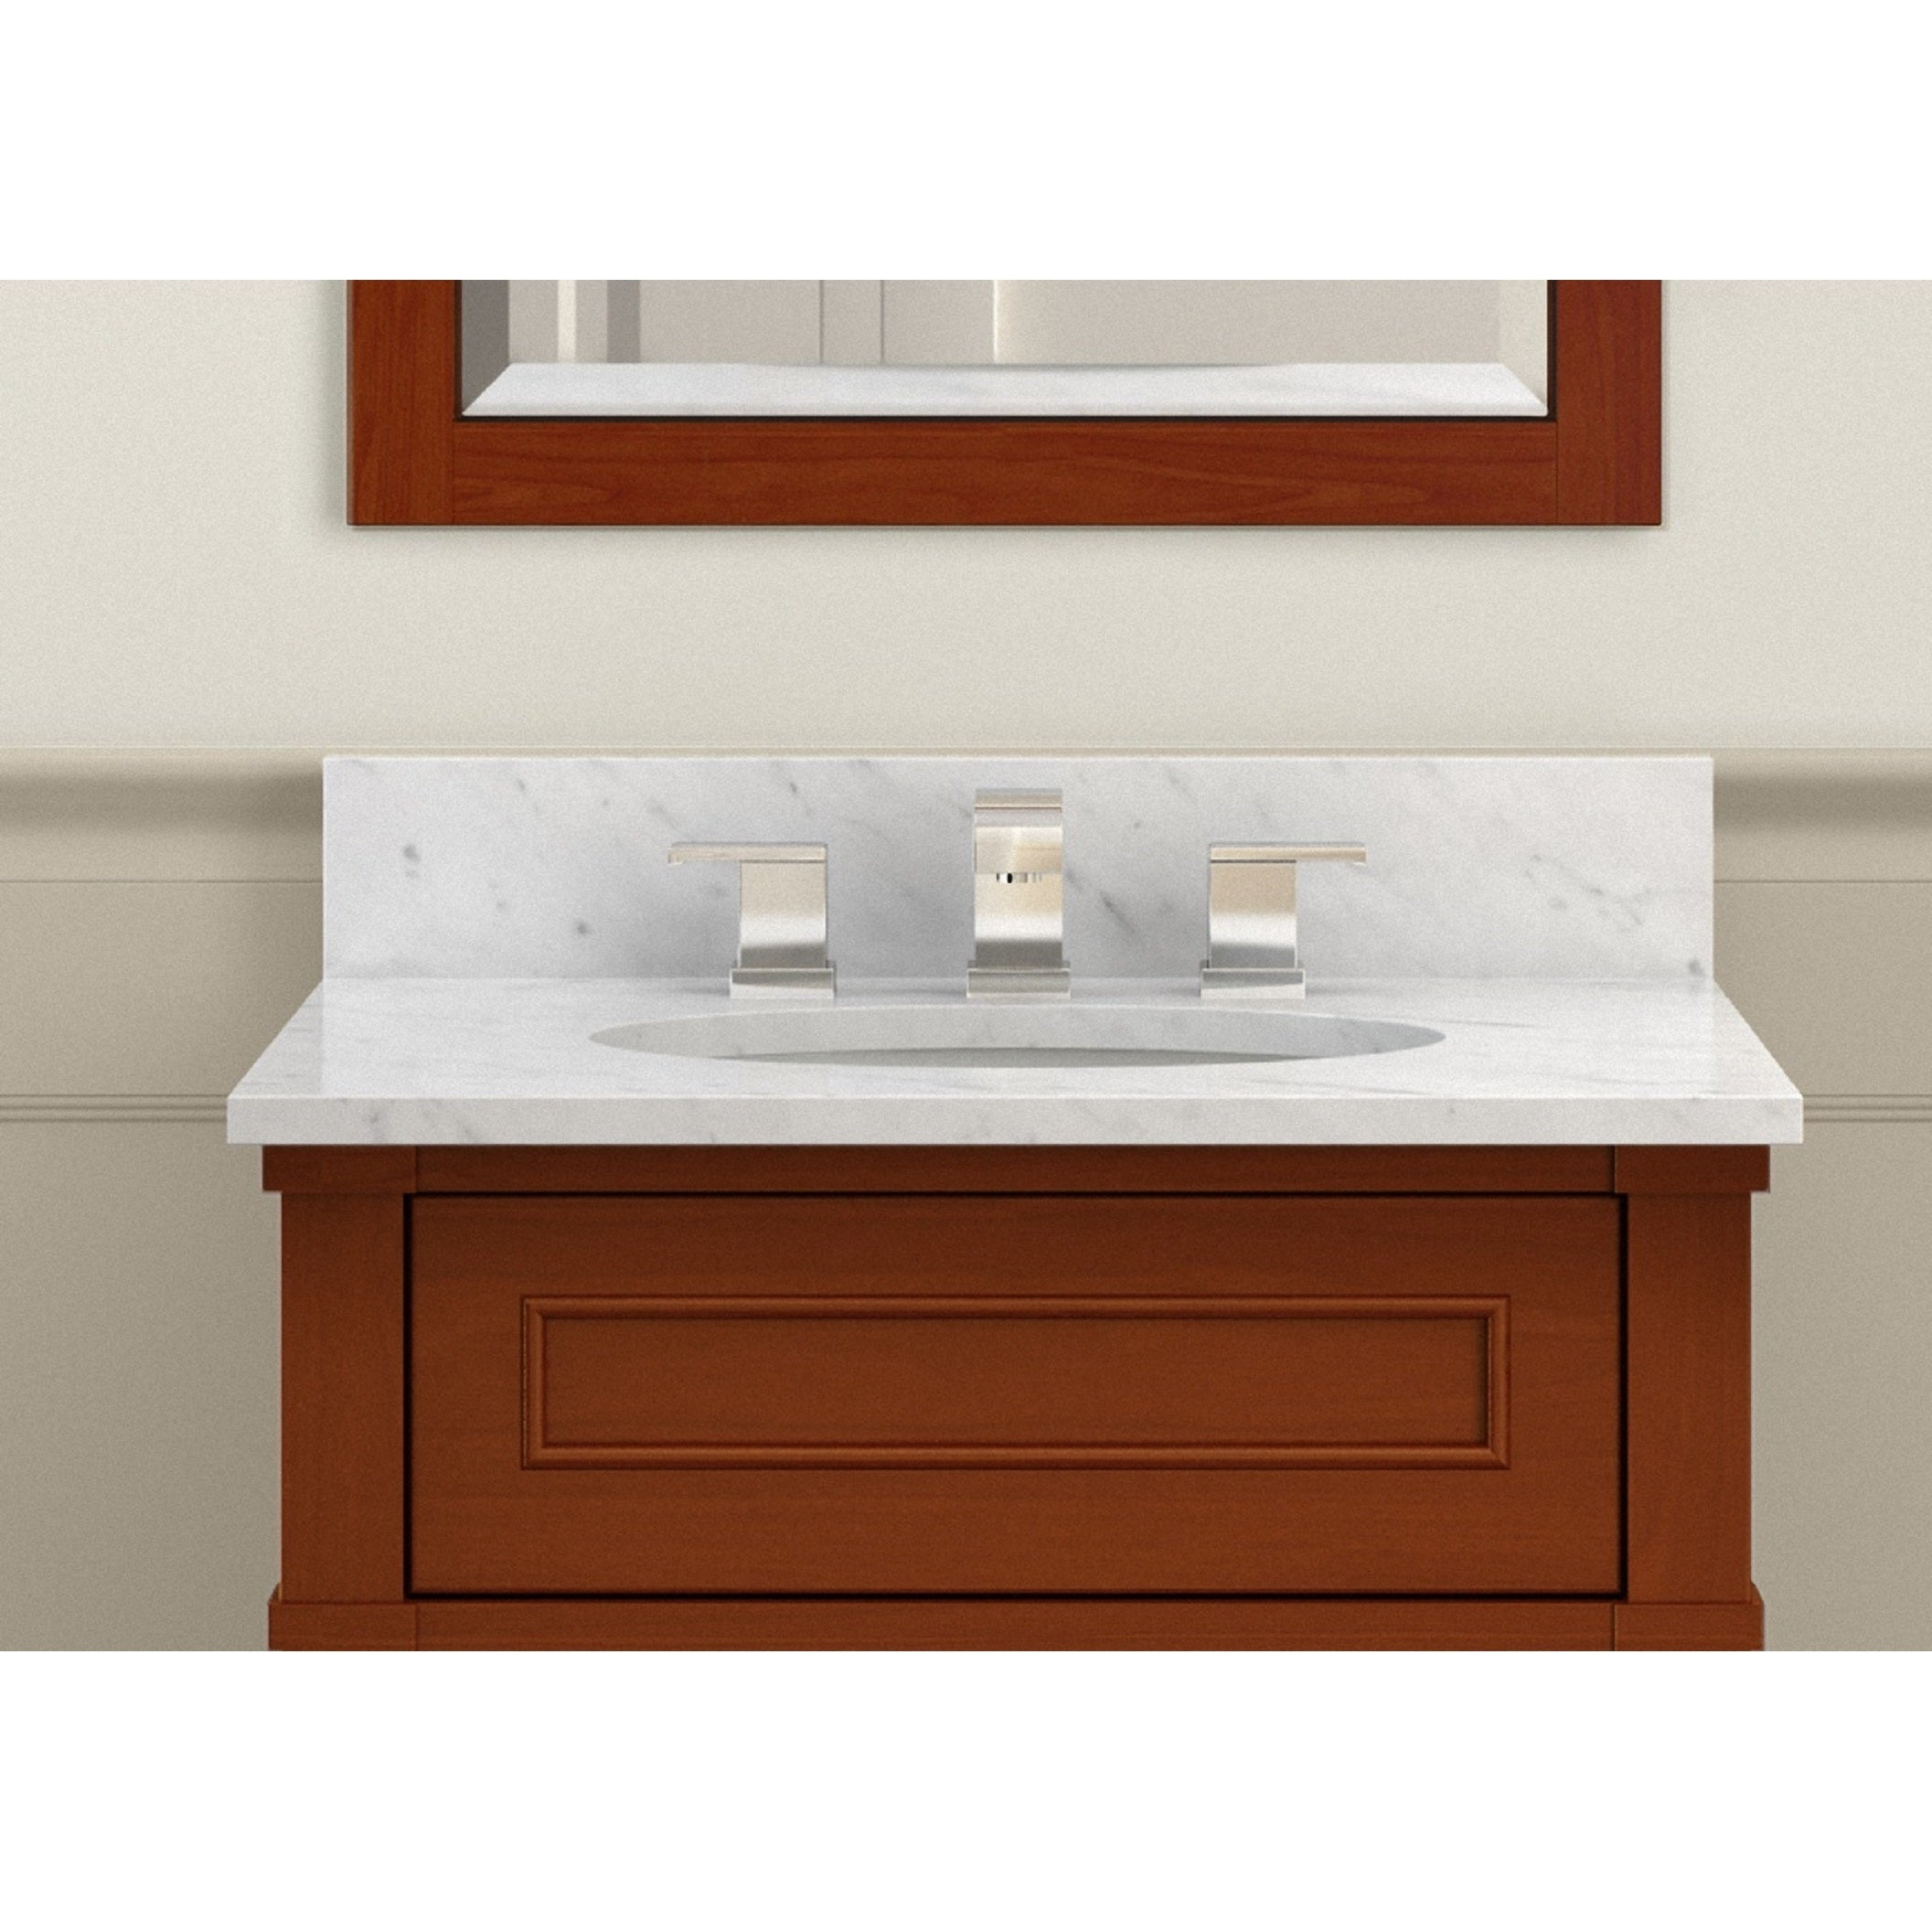 ideas vanity furniture inch with bedroom sink for design home best bathroom